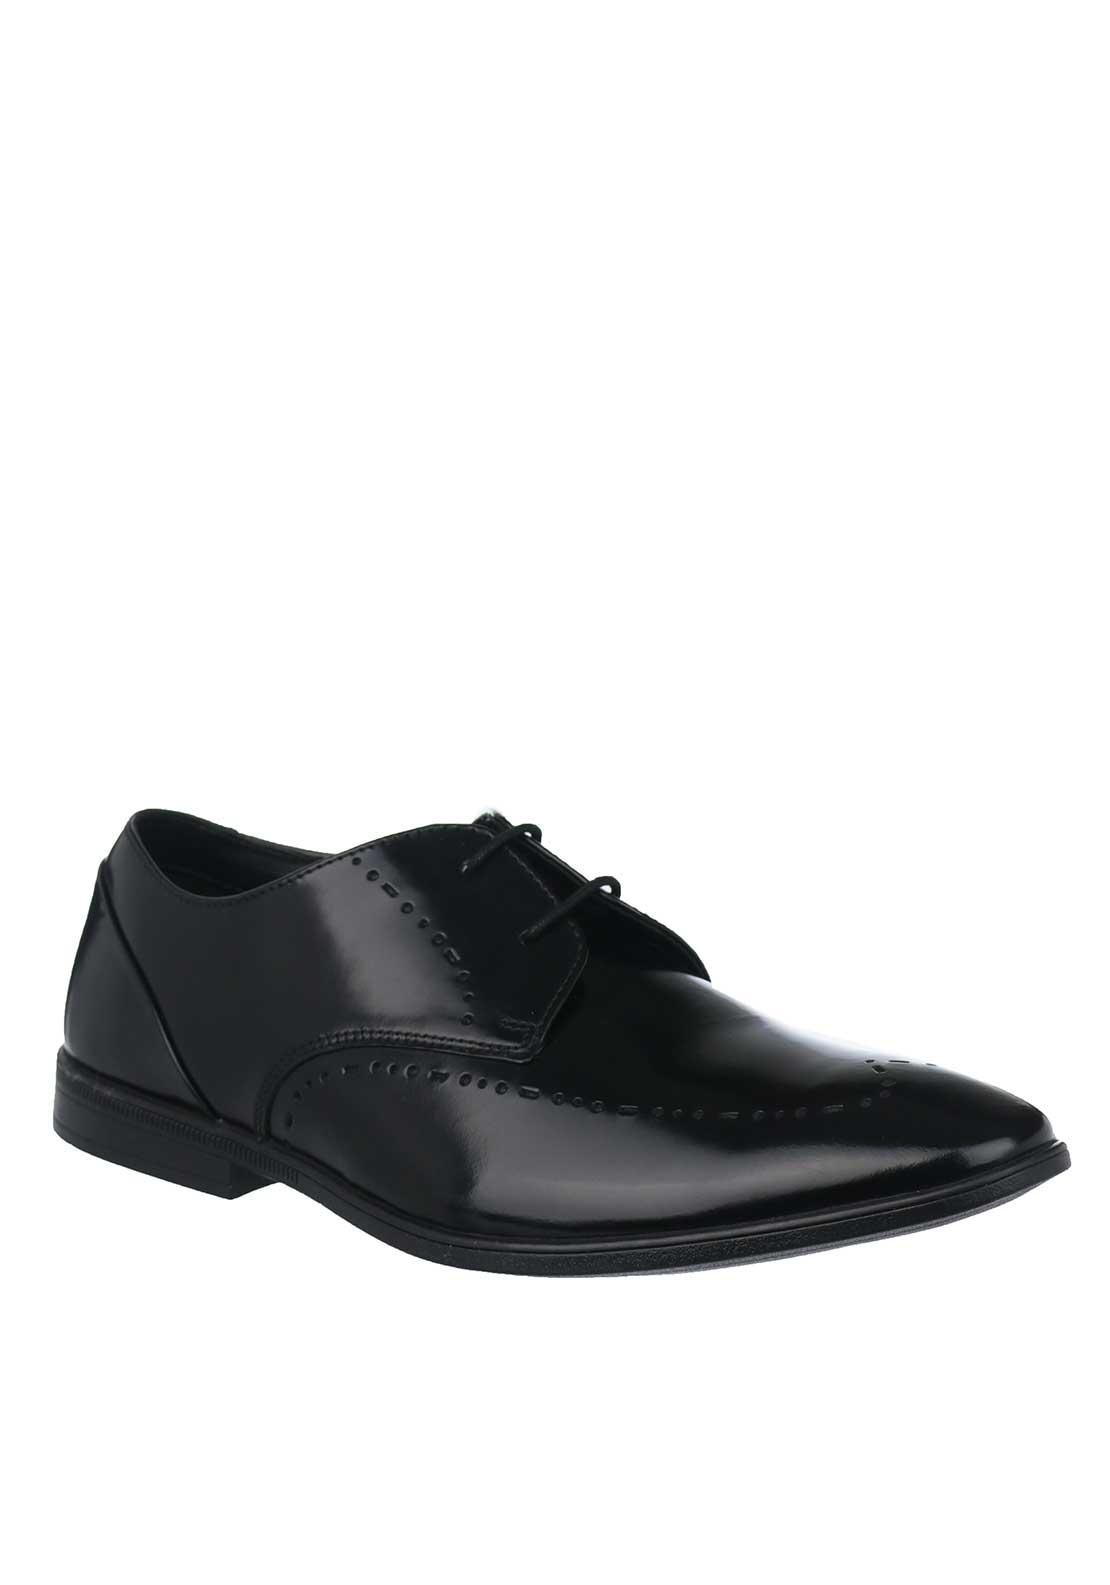 Clarks Mens Brampton Limit Leather Shoes, Black